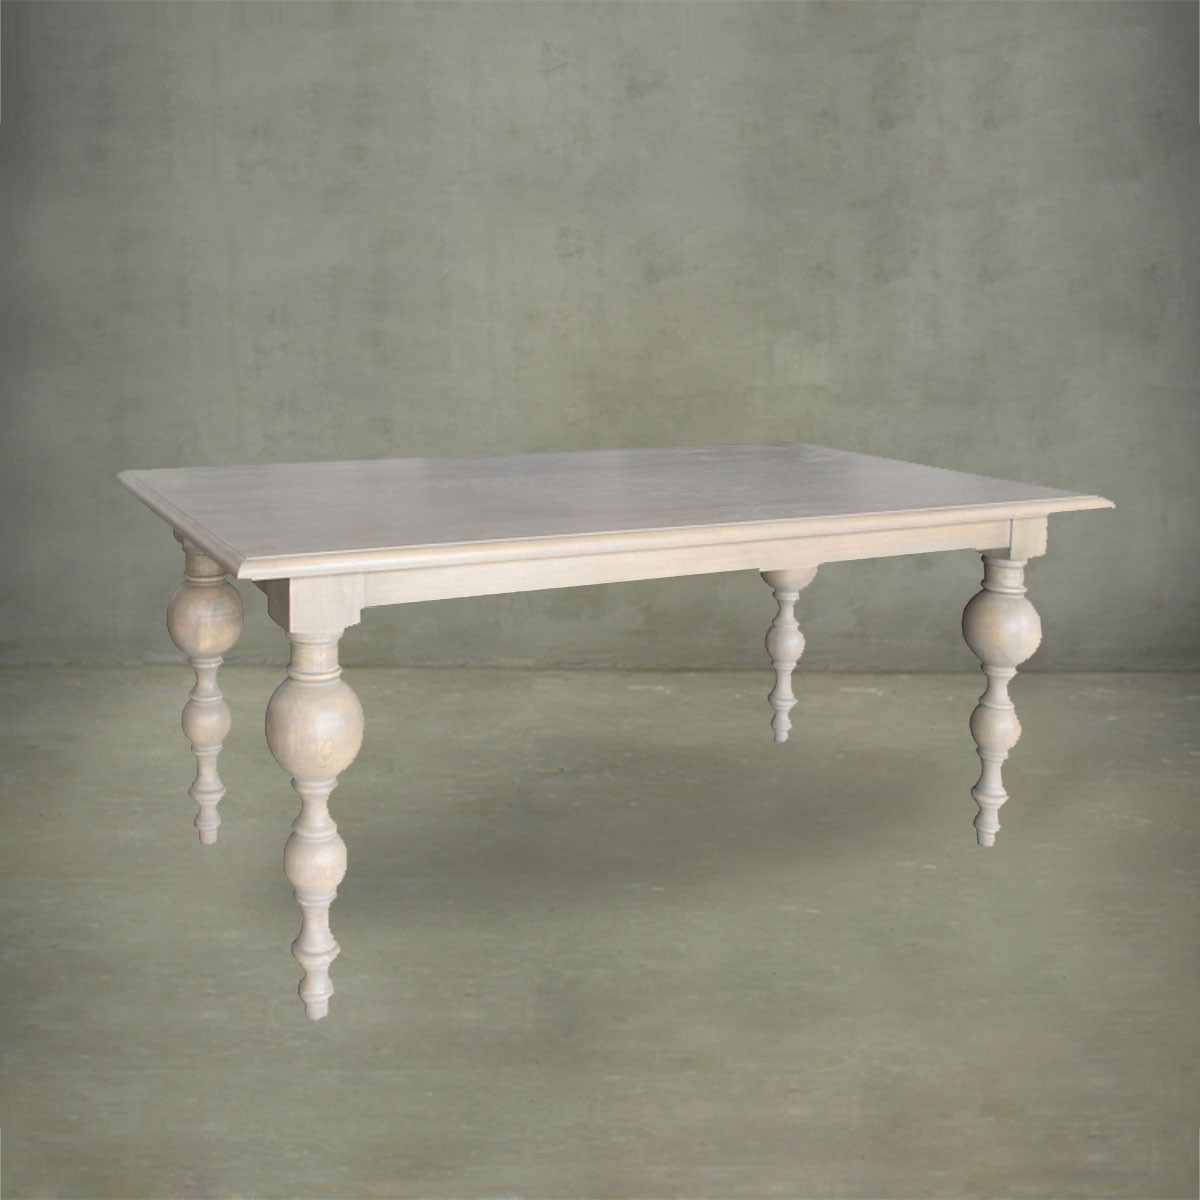 "70.9"" x 35.4"" Dining Table (PJT030)"